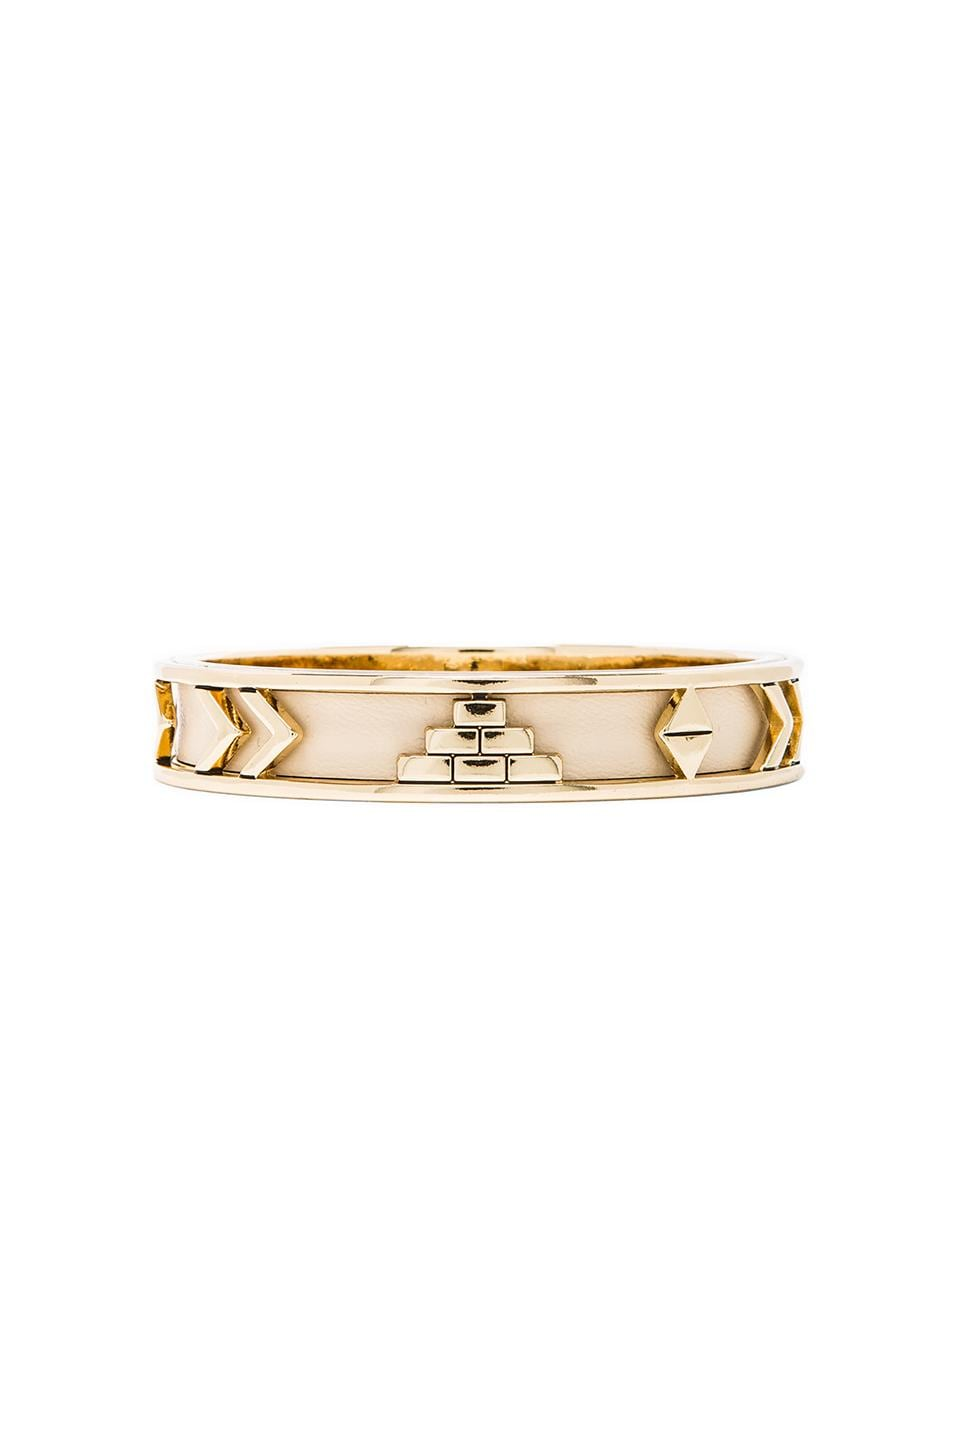 House of Harlow 1960 House of Harlow Aztec Bangle in Gold Tone Cream